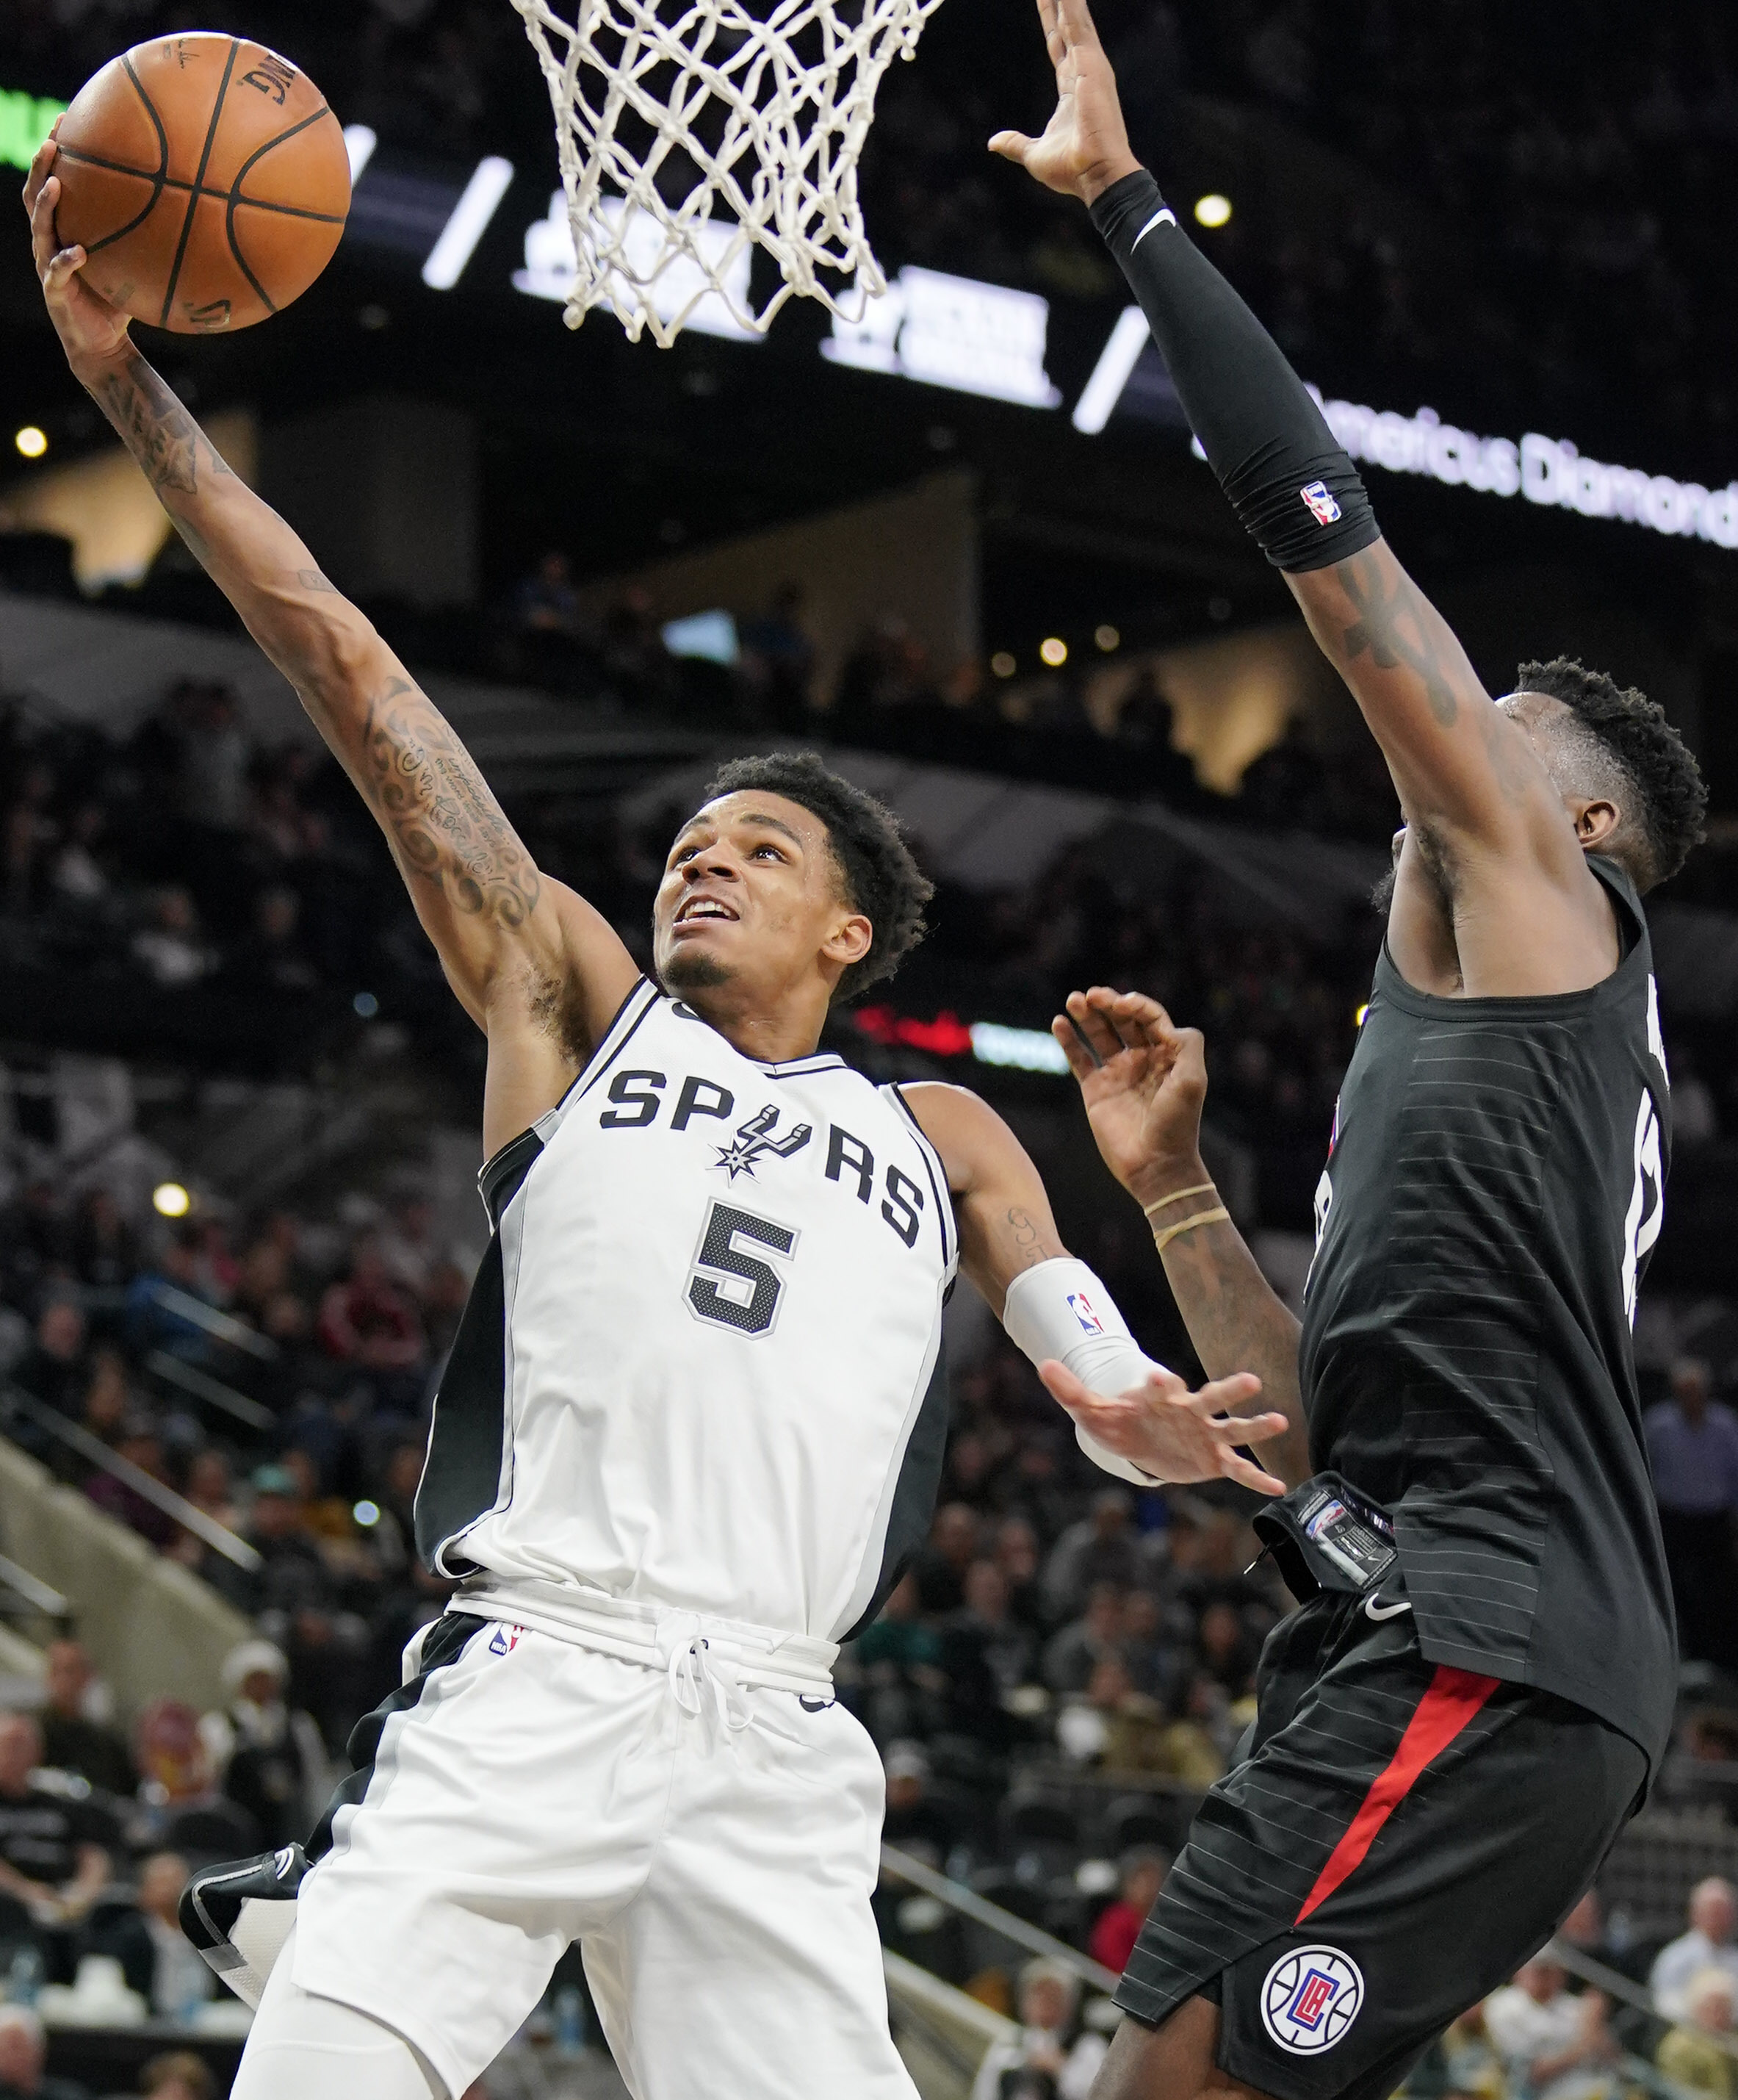 Dejounte Murray drives against Jamil Wilson. (AP Photo/Darren Abate)